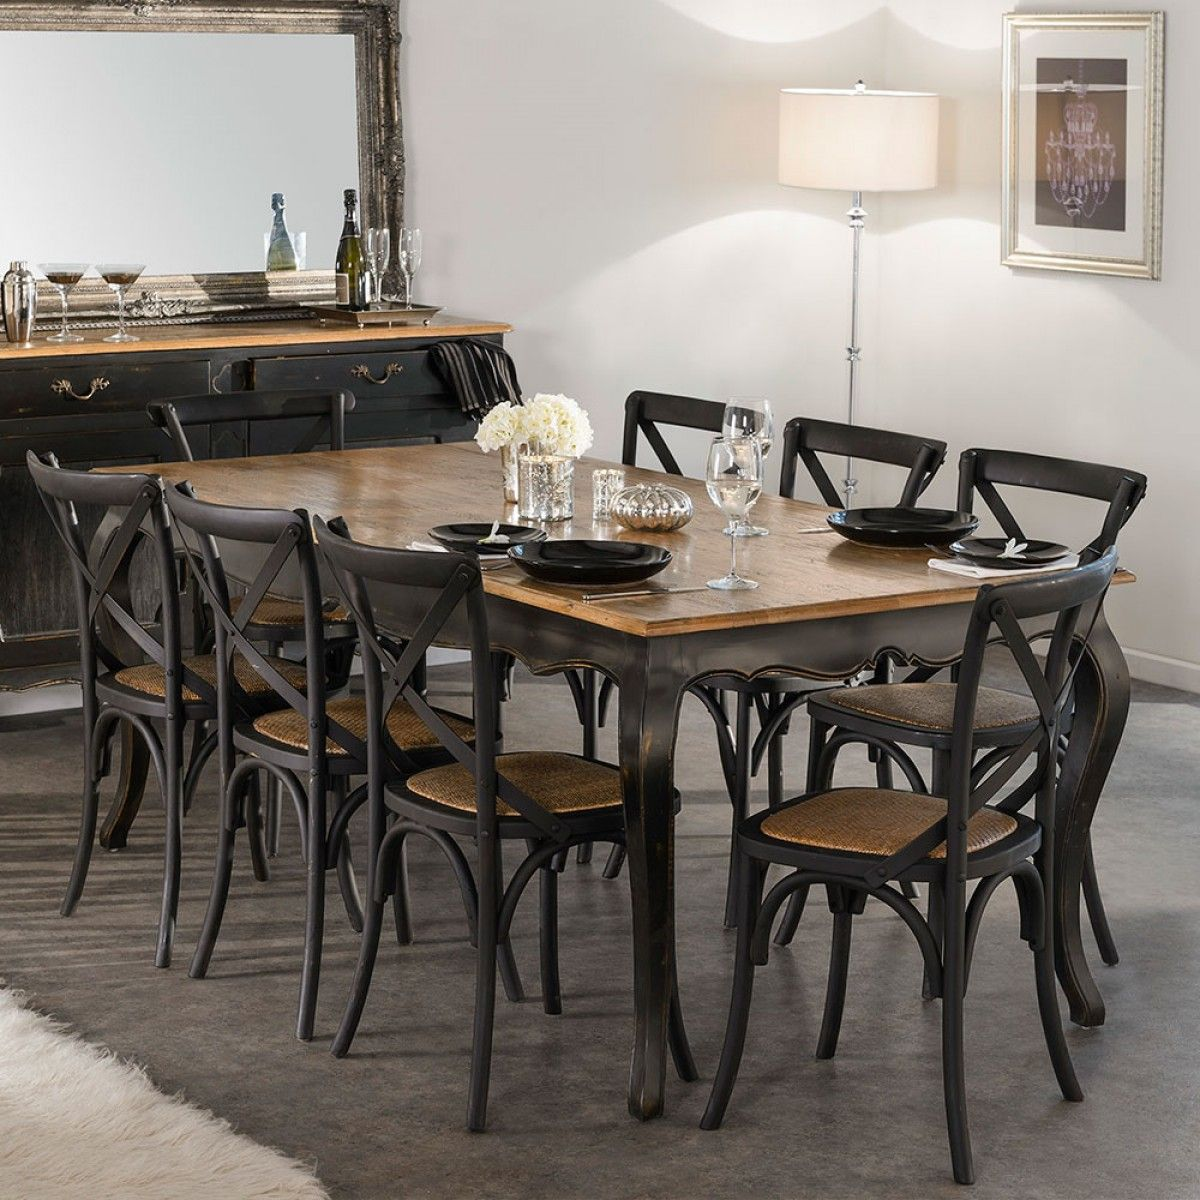 Black Wood Chair With Solid Wood Legs With Fabric Upholstered Seat